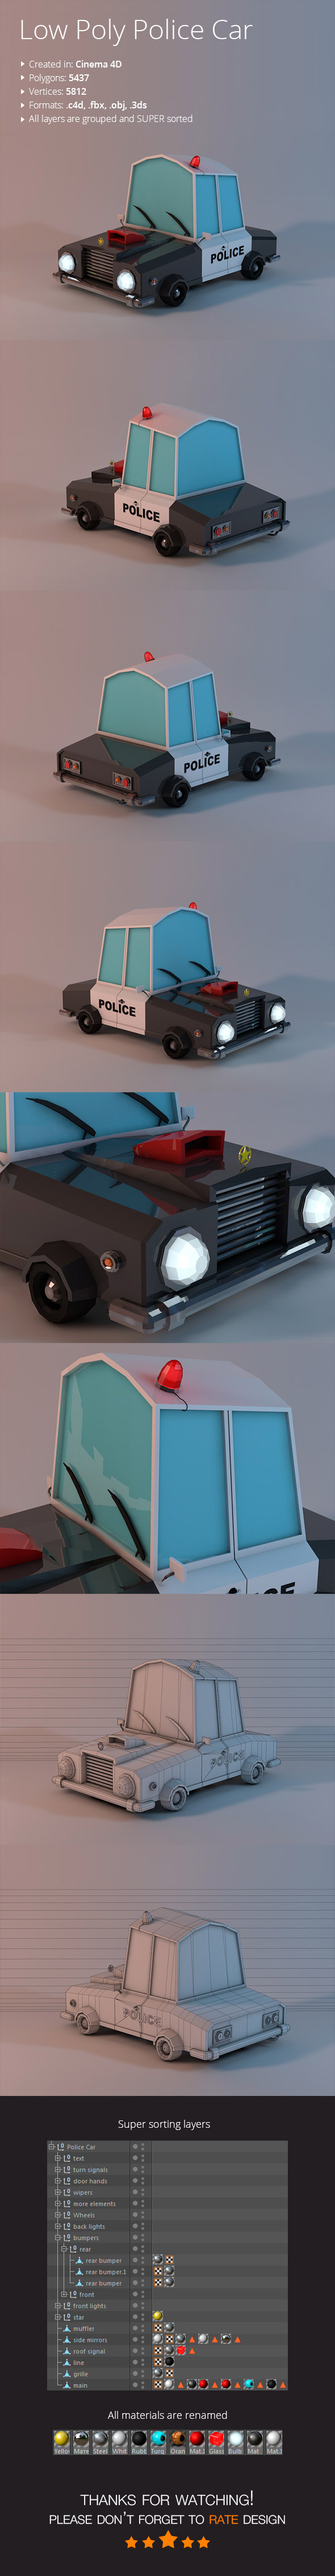 Low Poly Police Car - 3DOcean Item for Sale